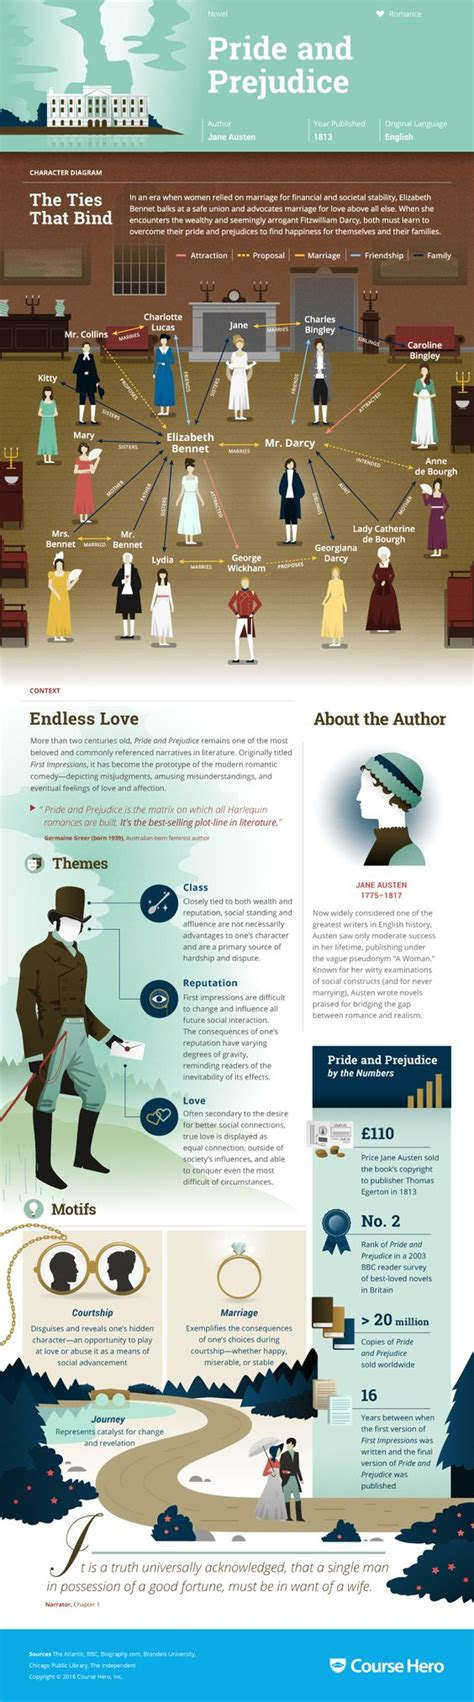 list of themes in pride and prejudice pride and prejudice infographic brush up on all the